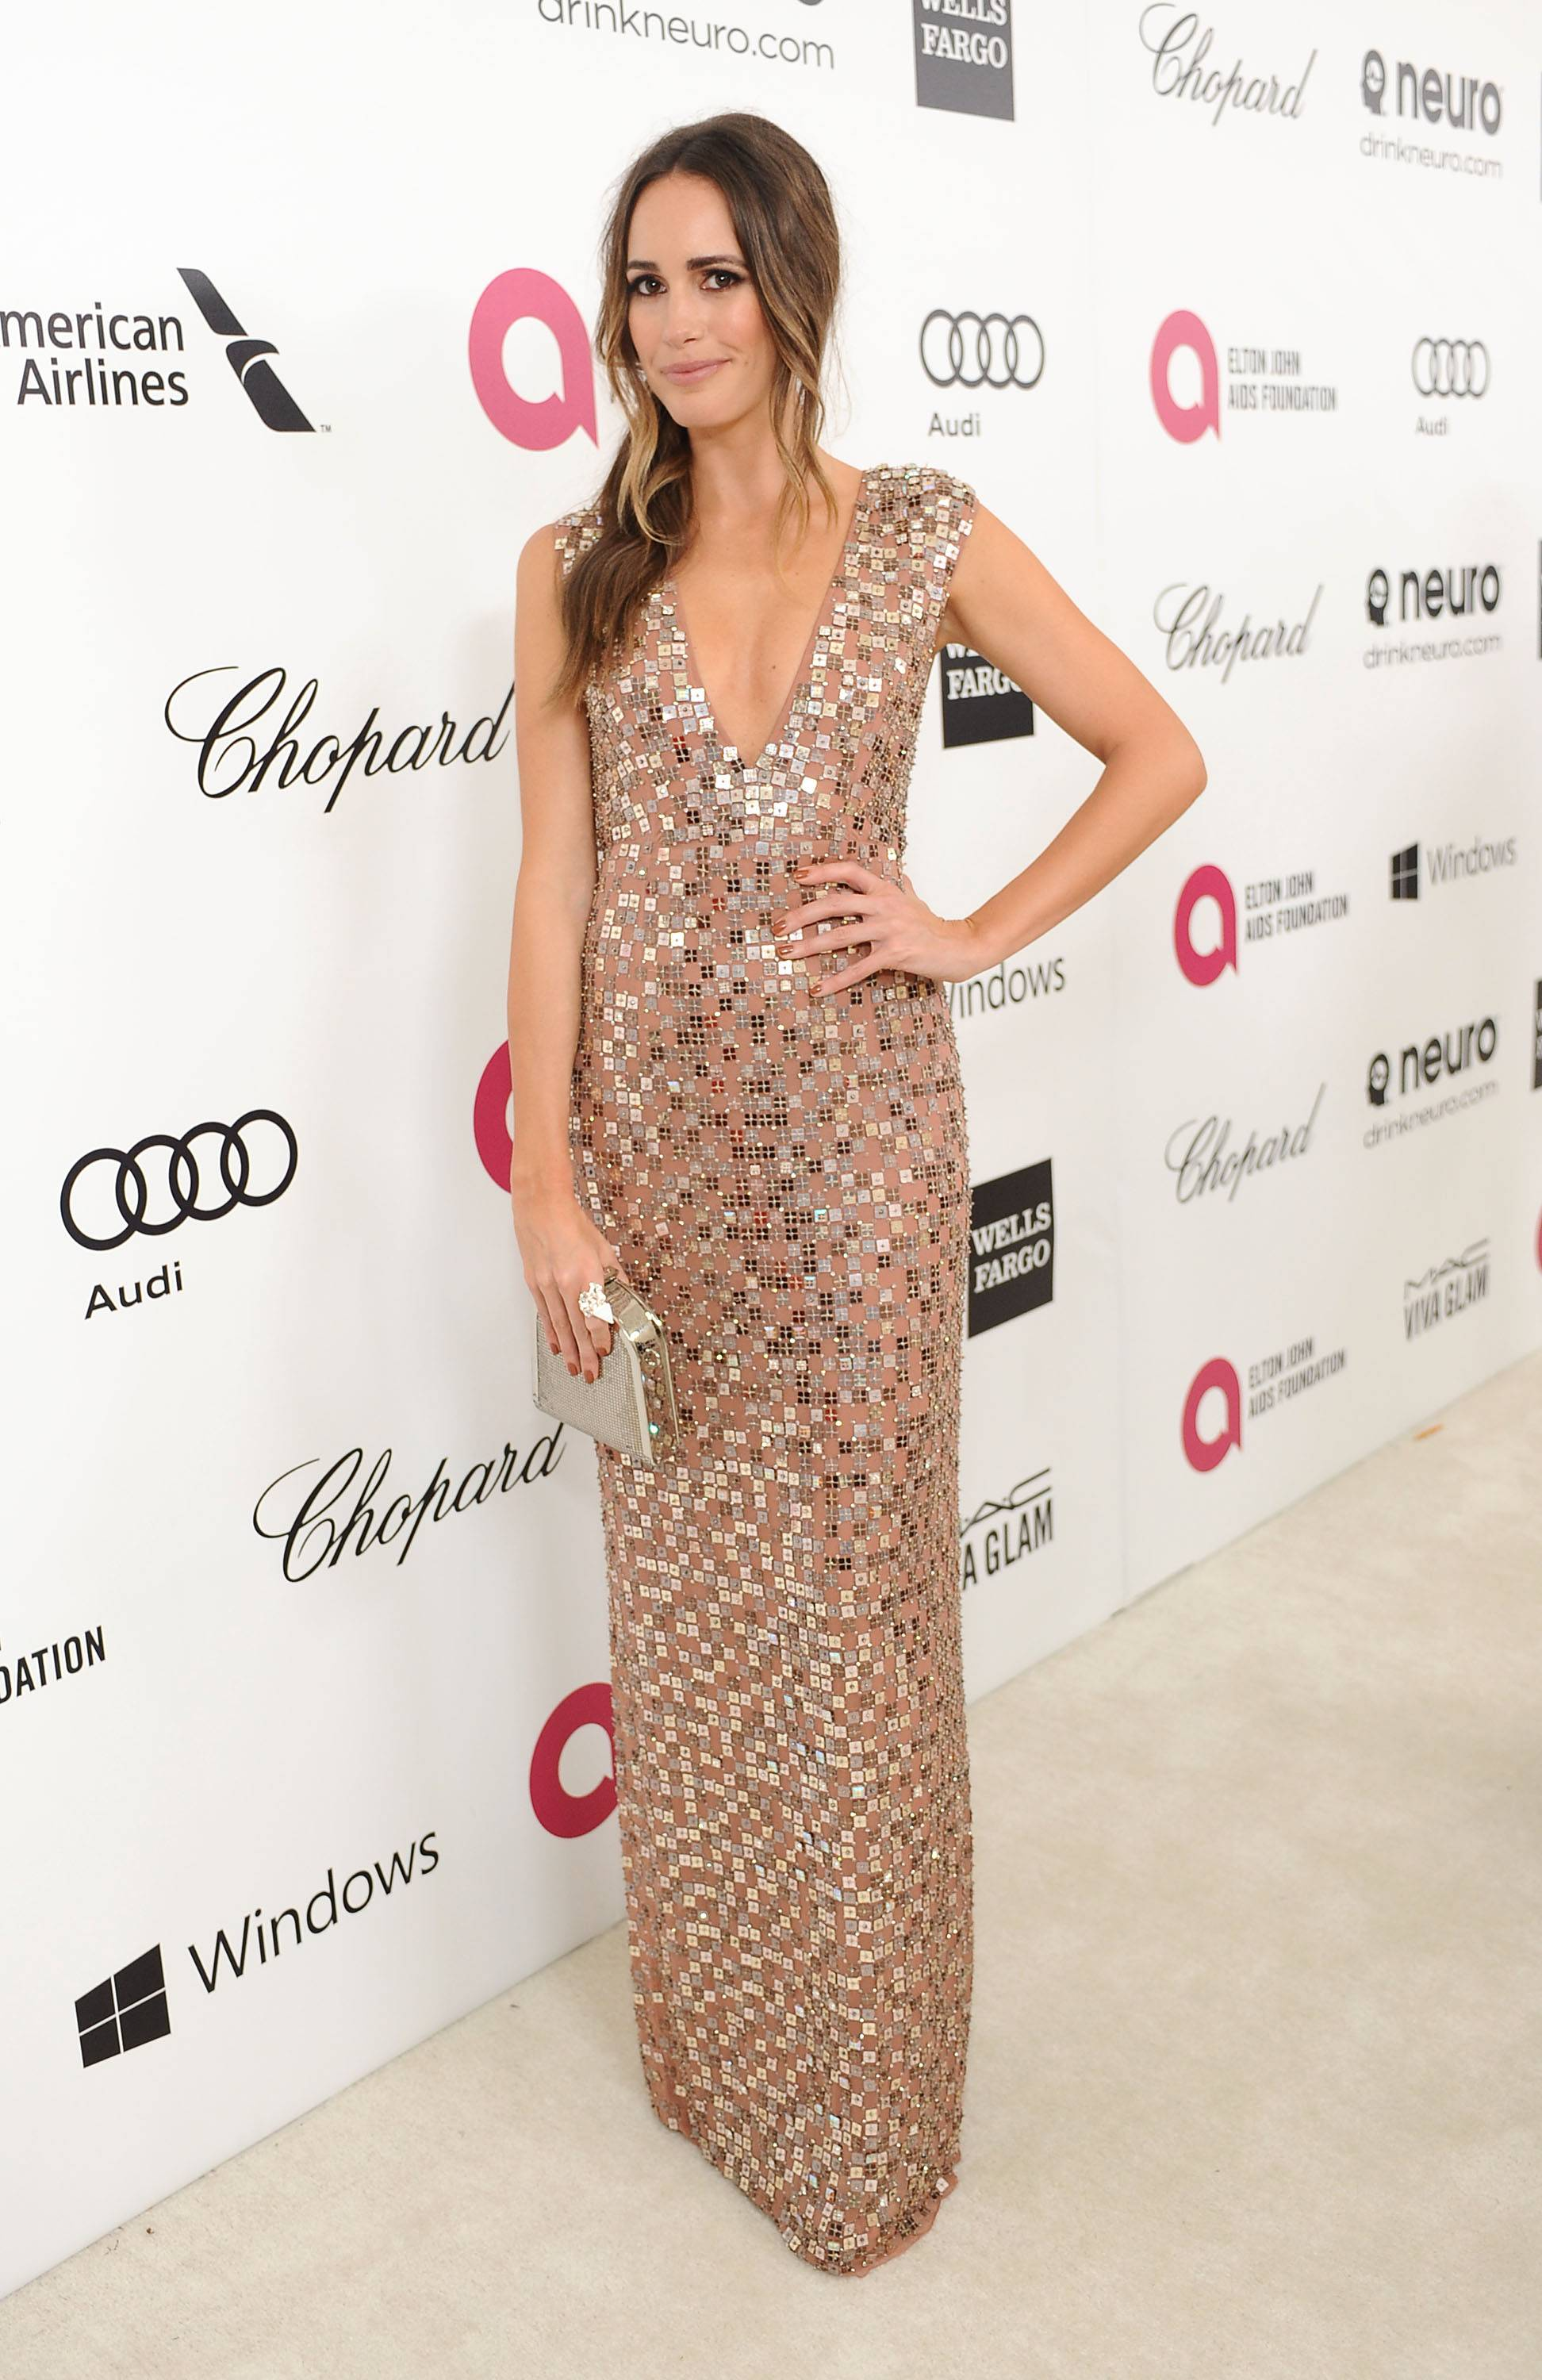 Chopard At 22nd Annual Elton John AIDS Foundation Academy Awards Viewing Party